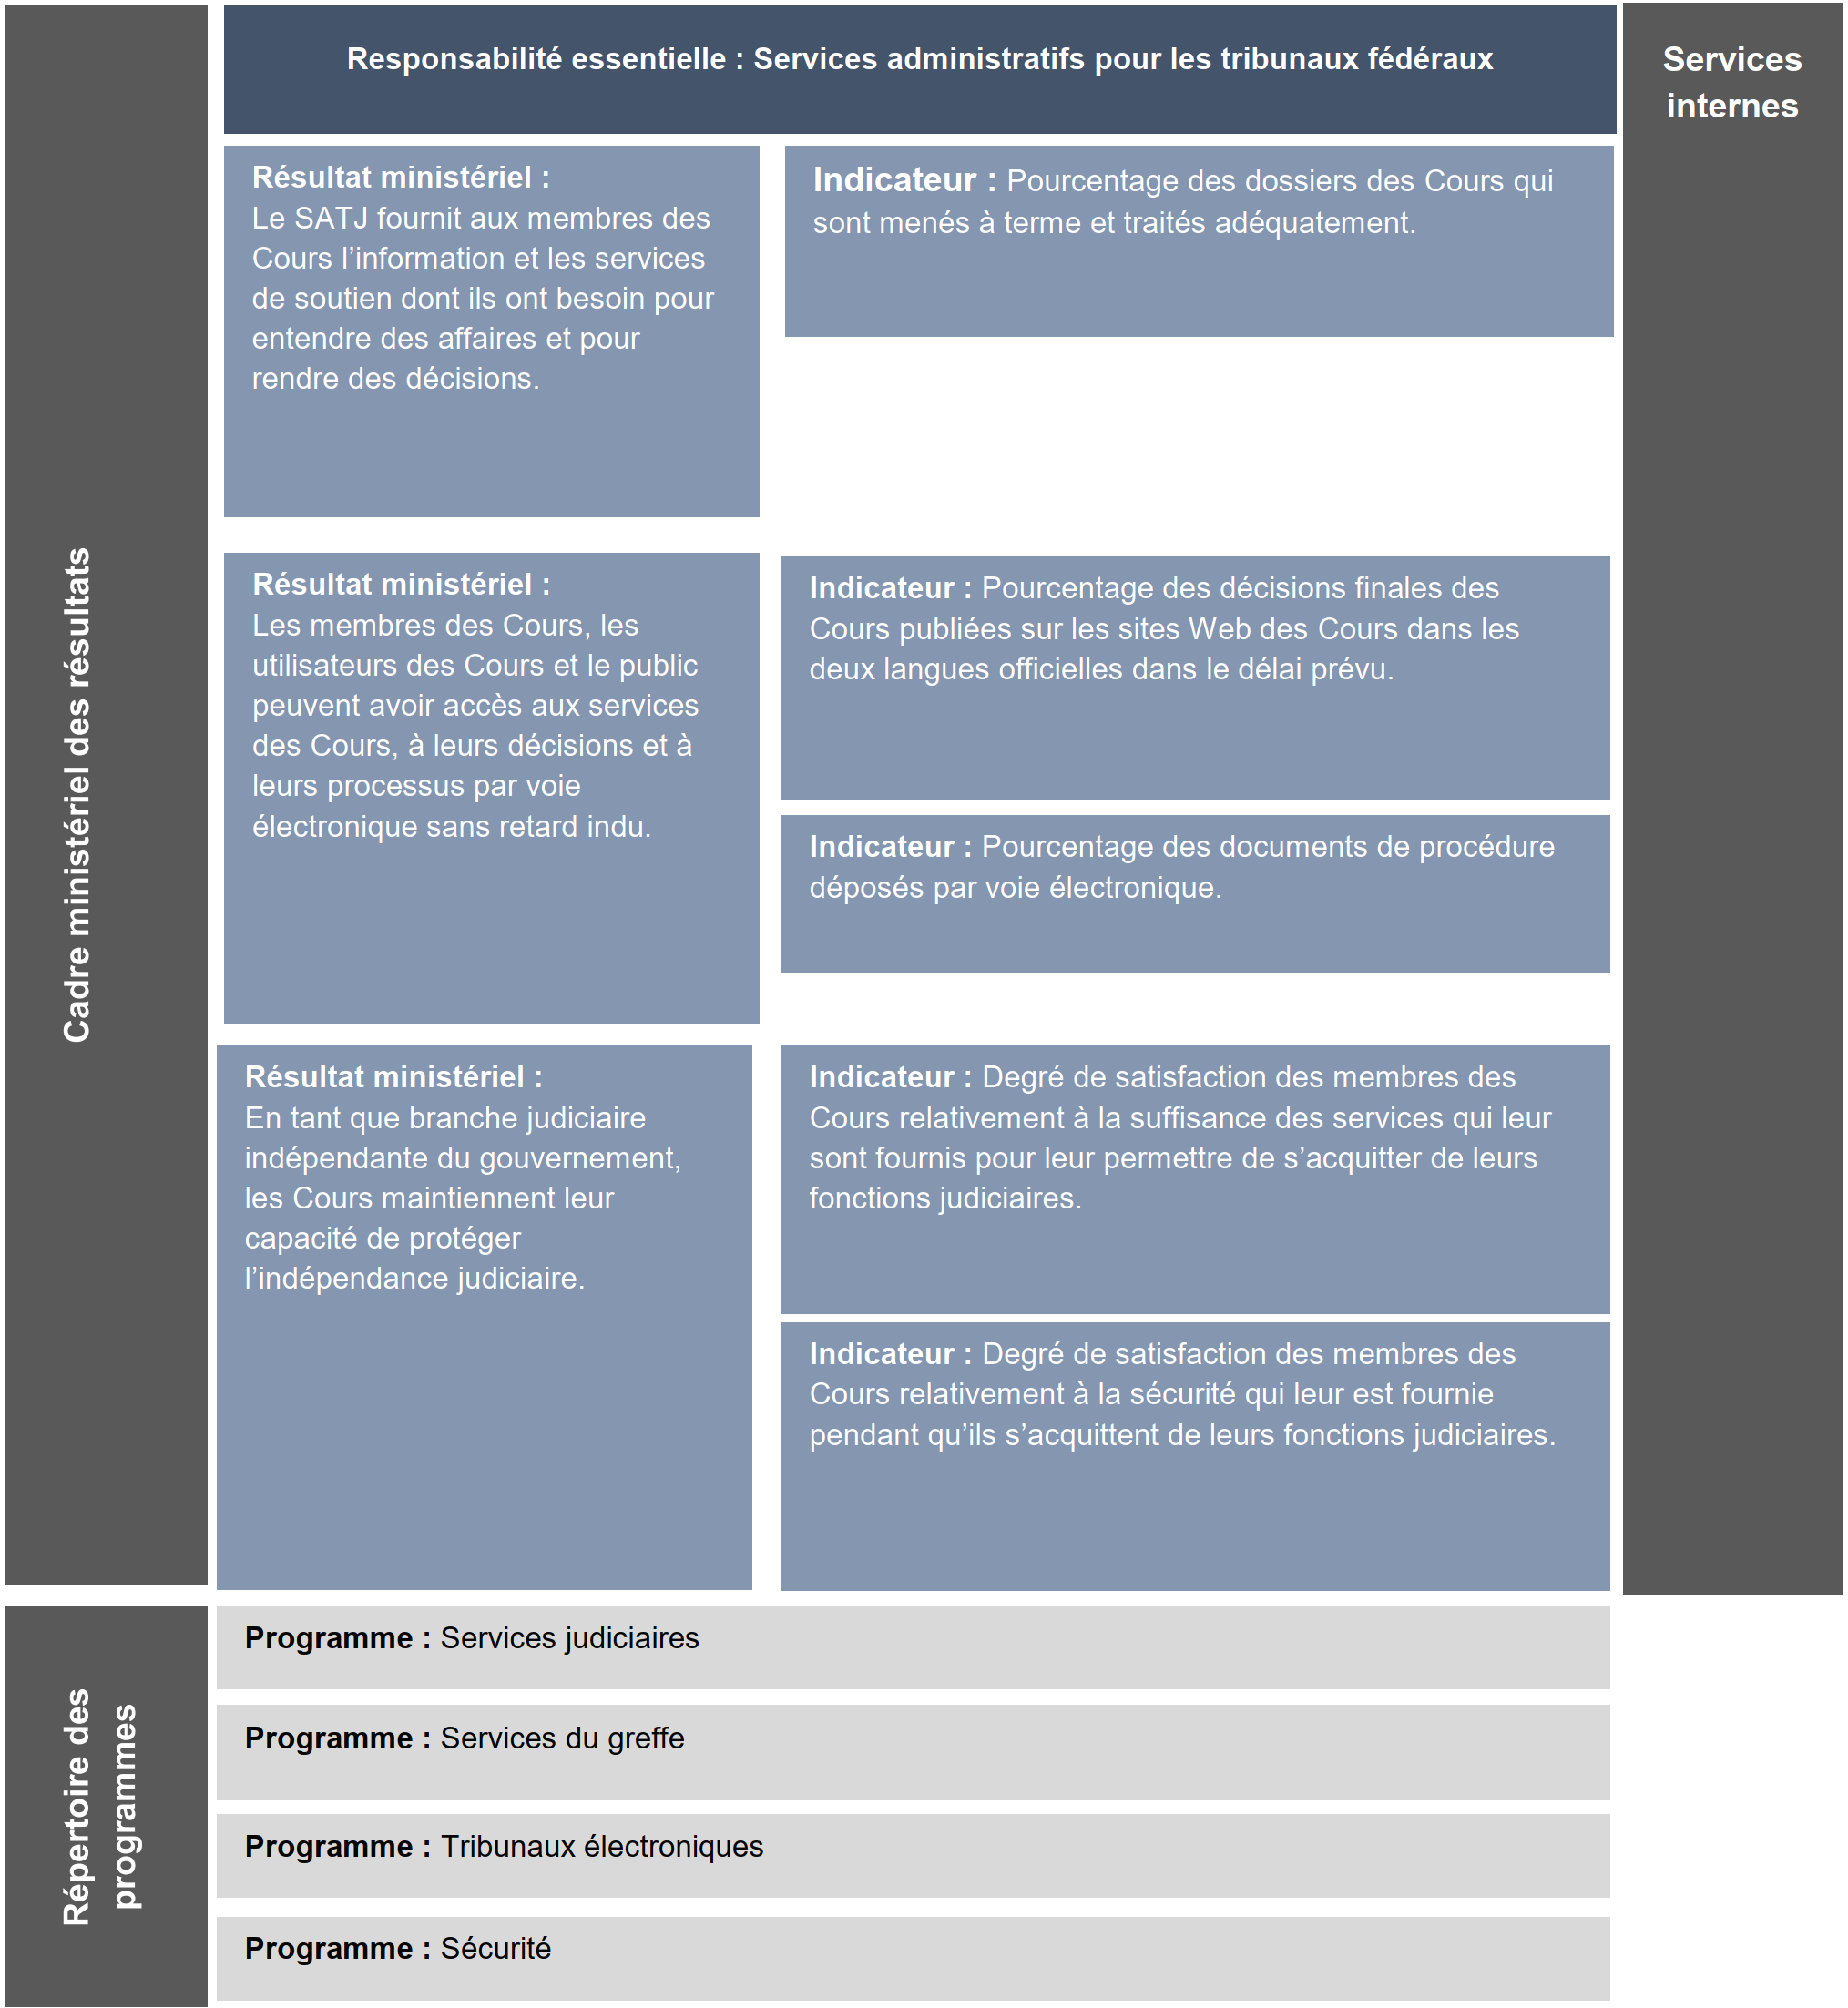 Departmental results framework and Program inventory